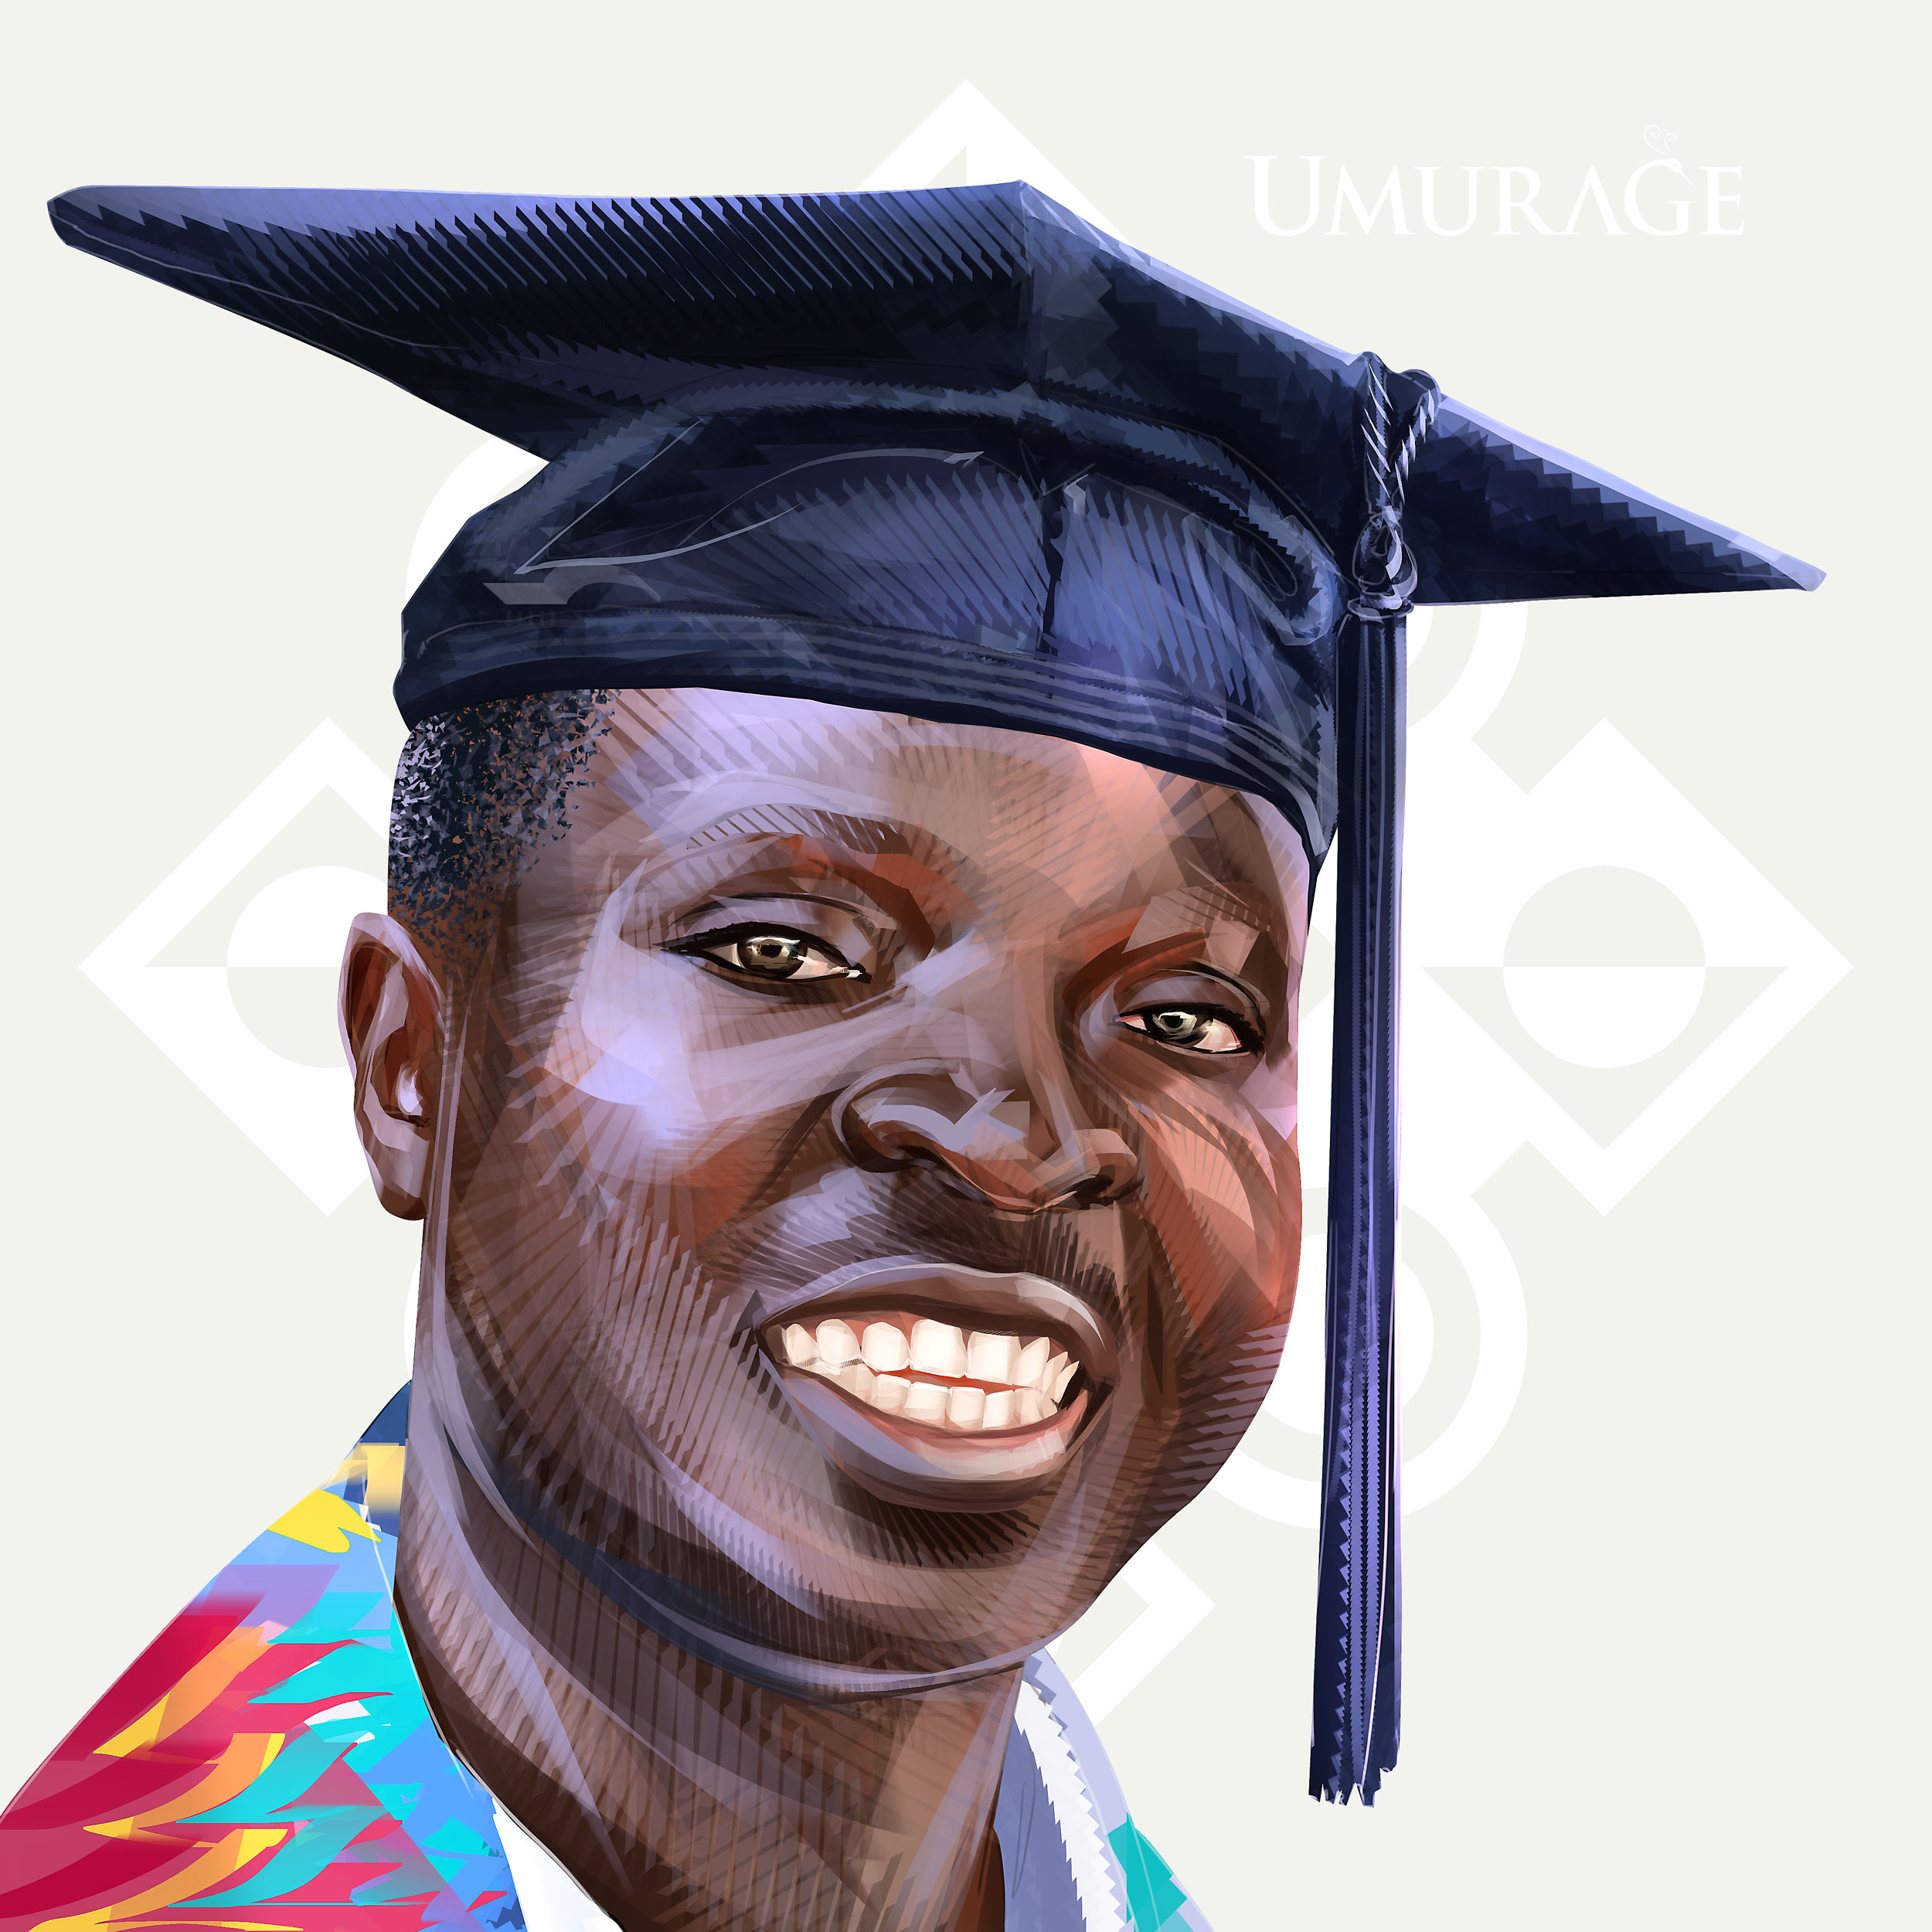 UMURAGE_LM_45_WilliamKamkwamba_WEB.jpg